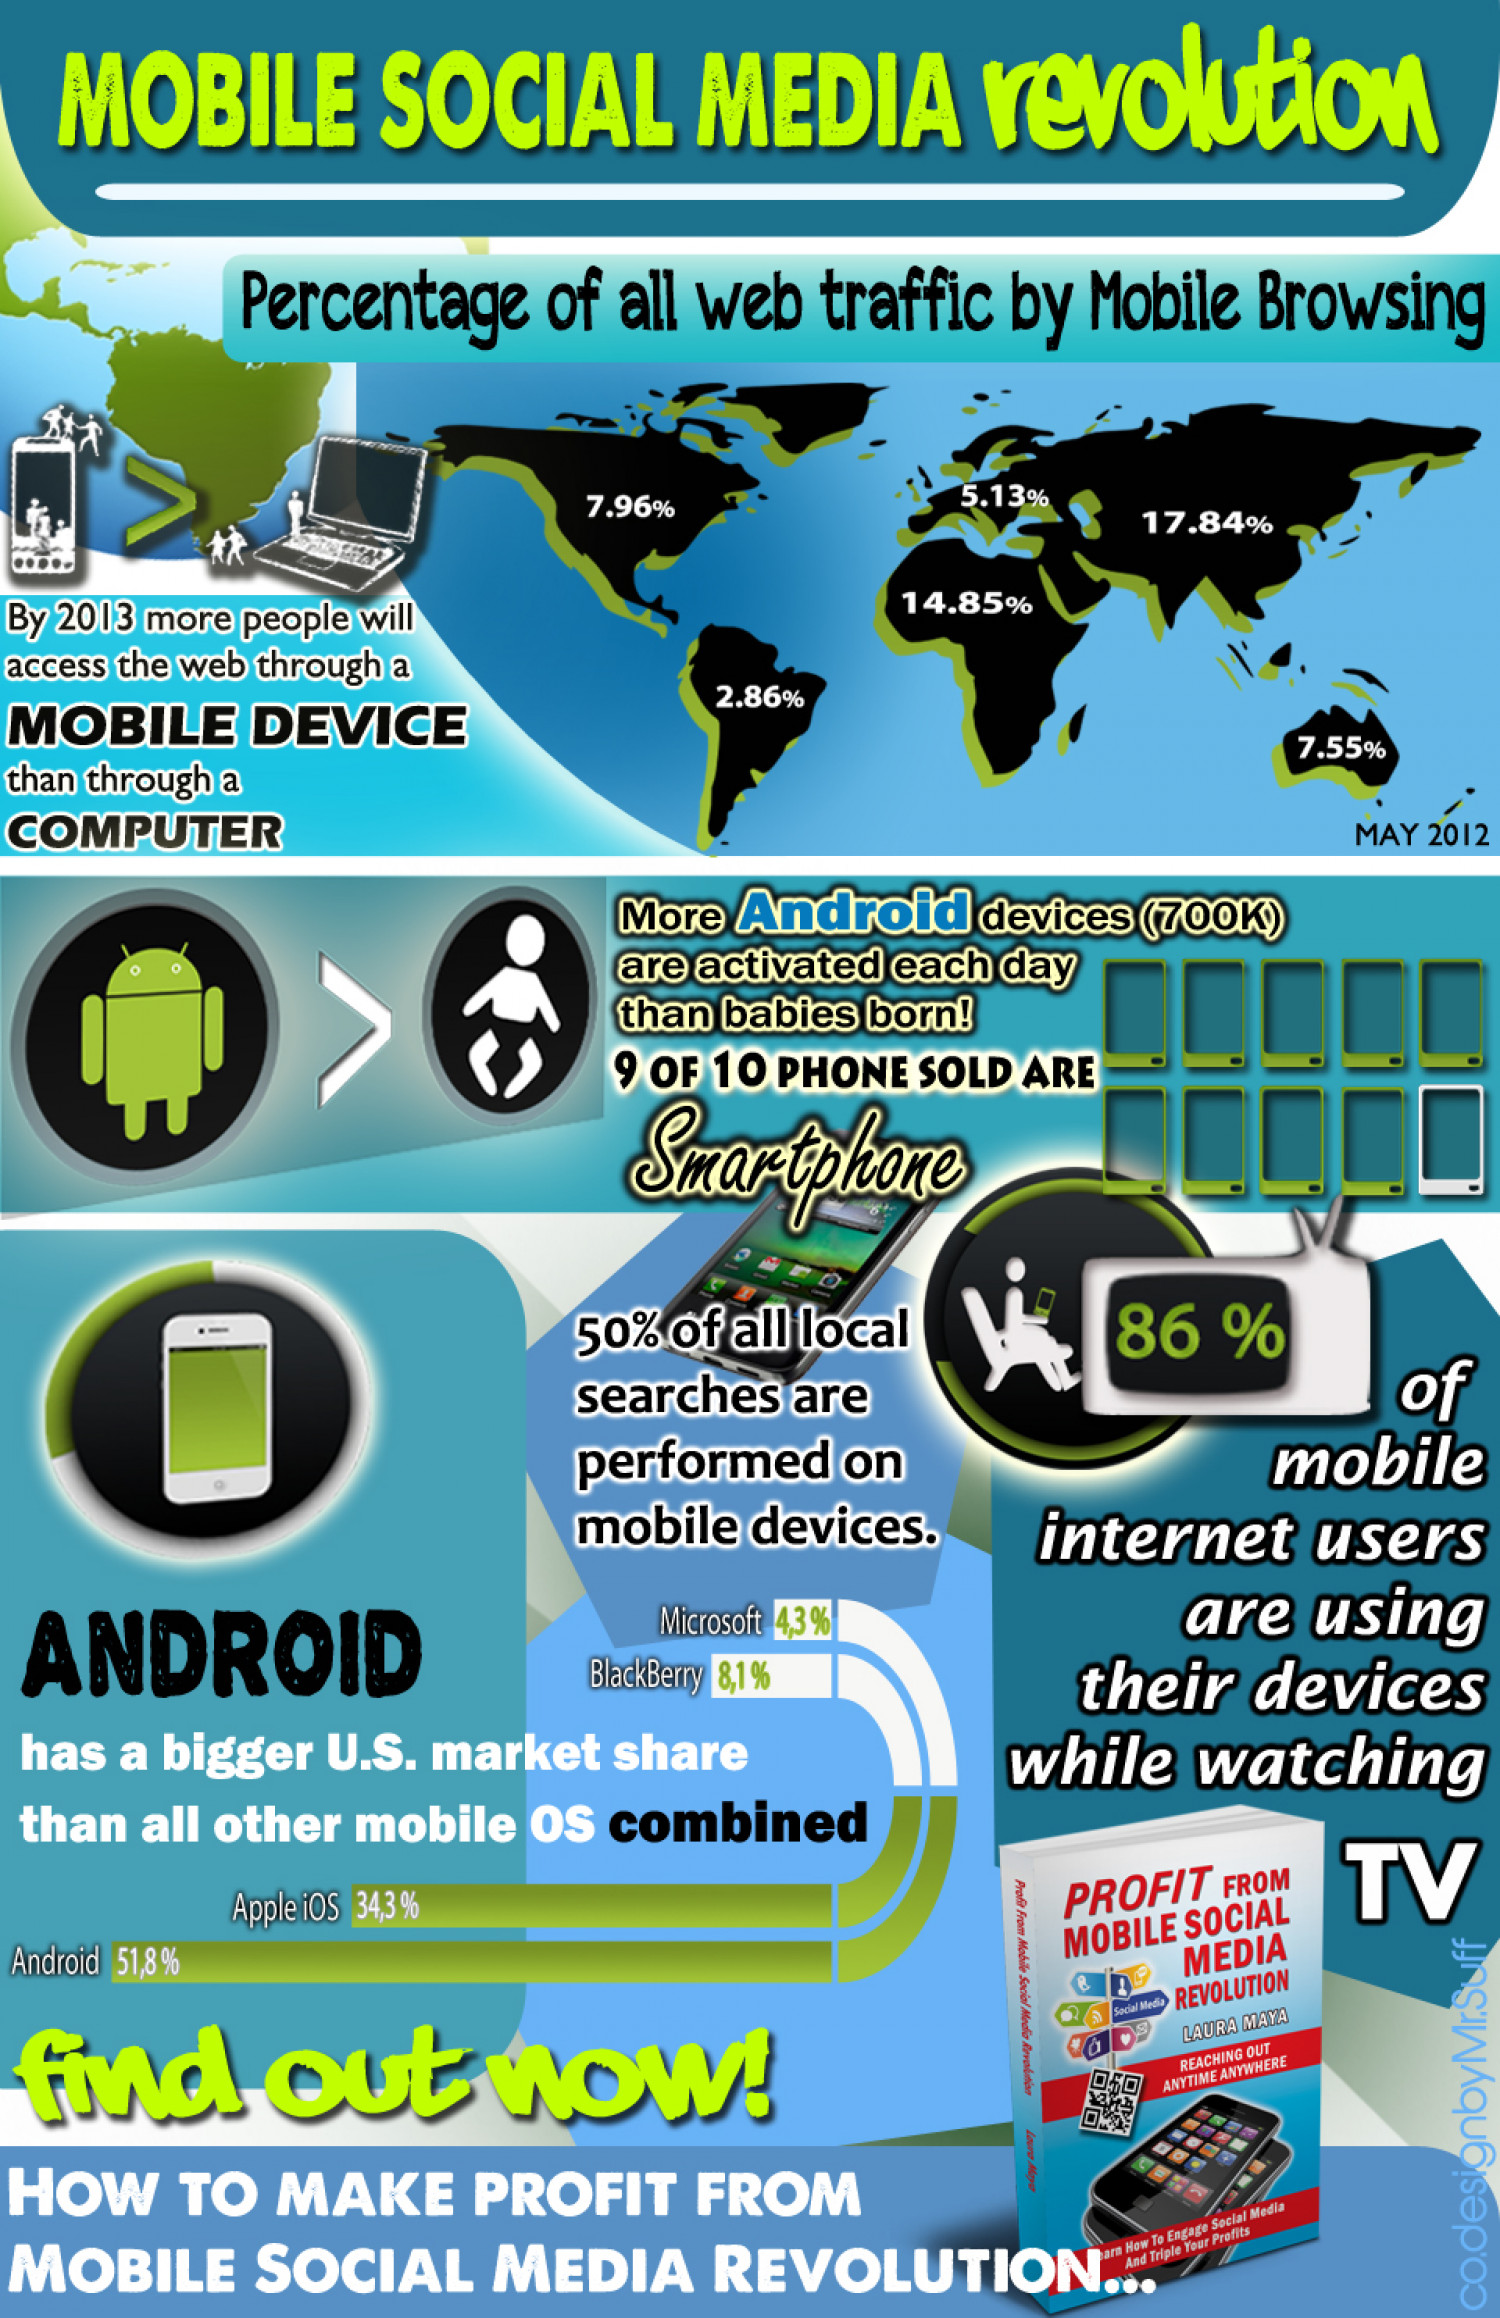 Mobile Social Media Revolution Infographic